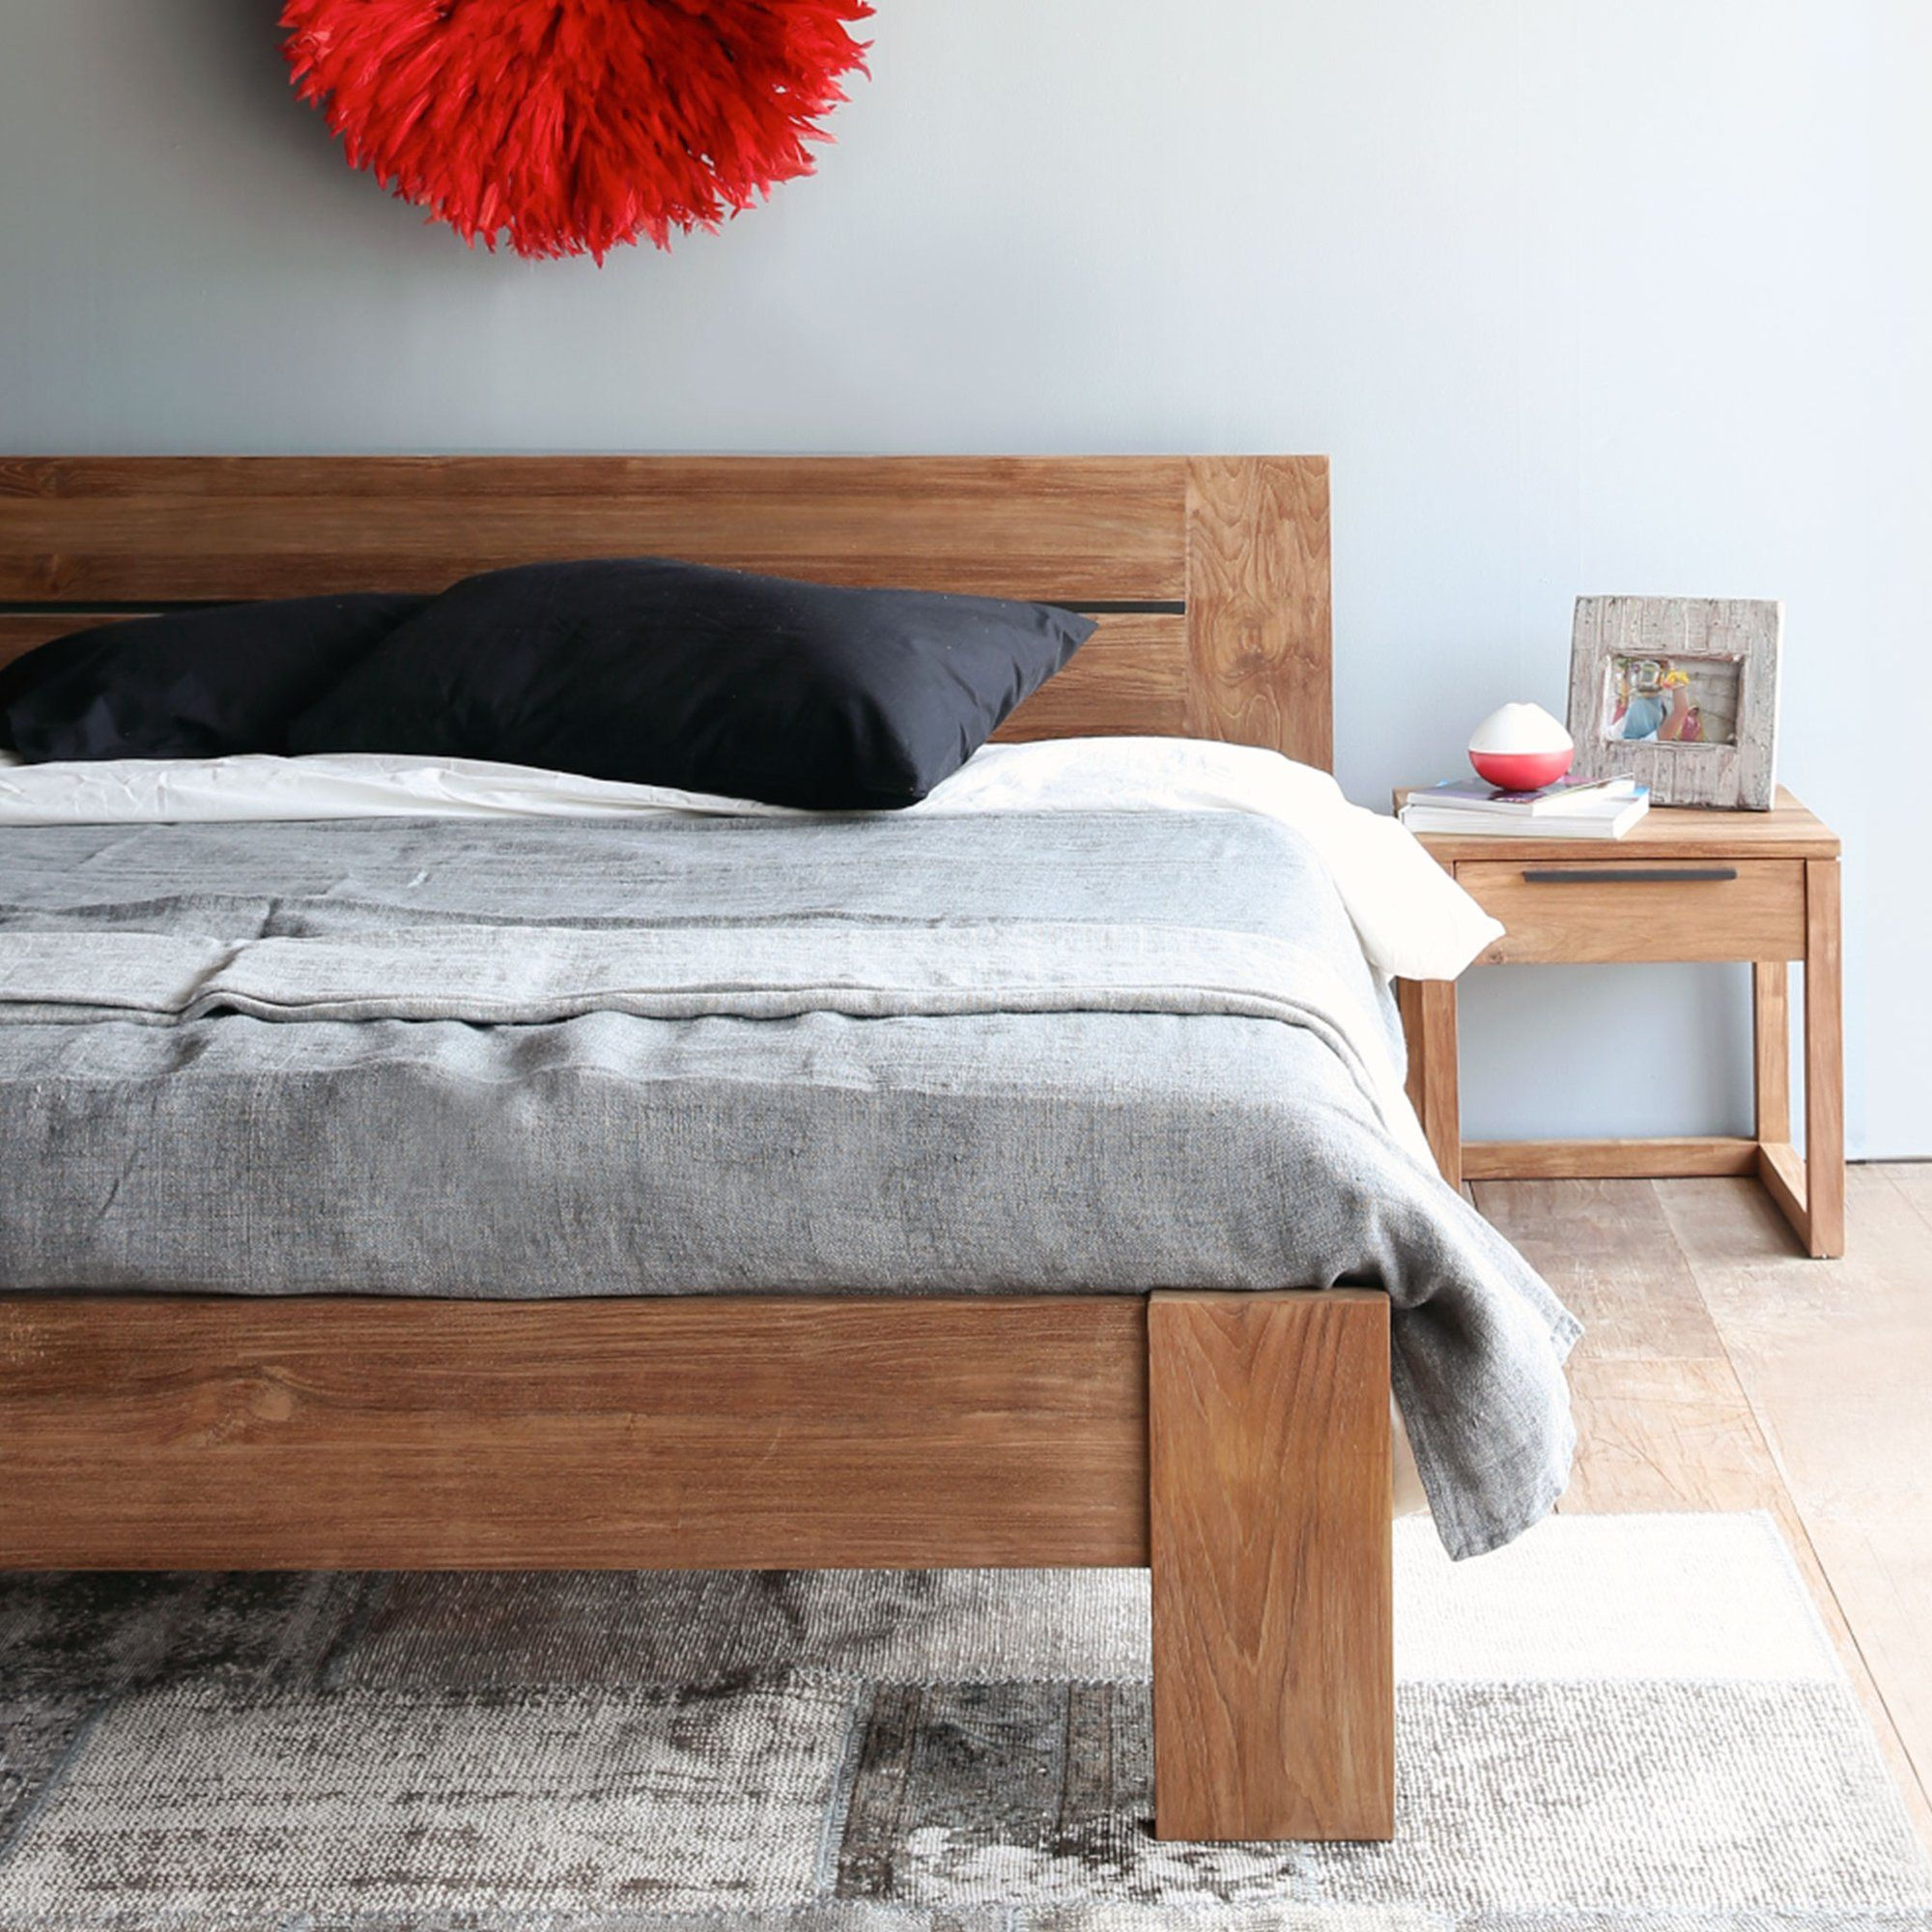 Teak Bed Frame Azur Bed Singapore Size In 2020 Wooden King Size Bed King Size Bed Frame Teak Bedside Table